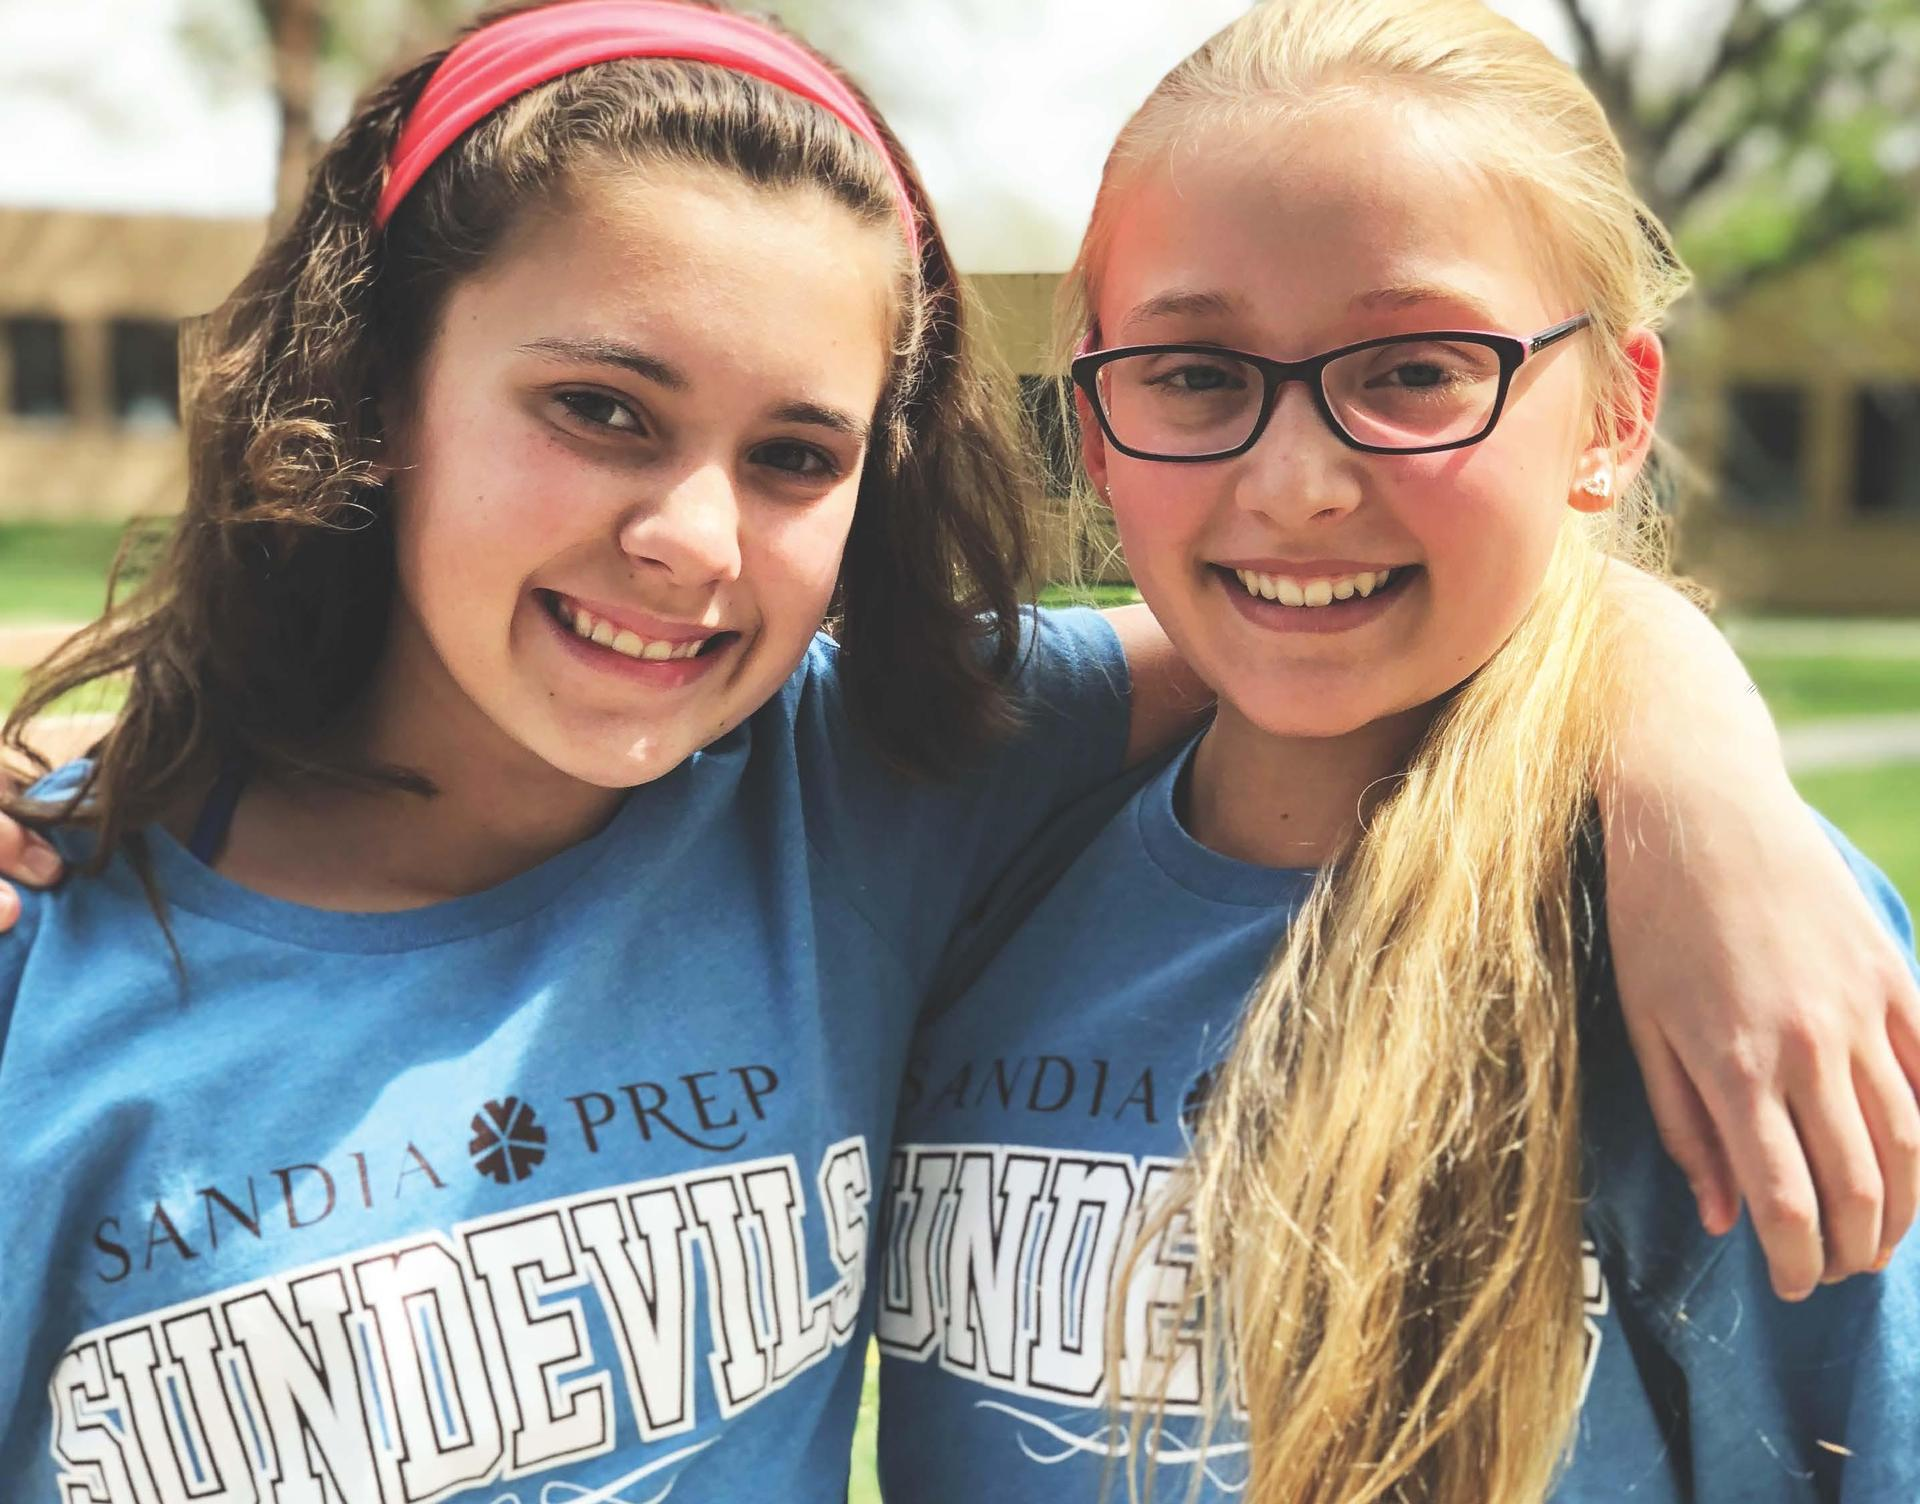 Two middle school girls wearing Sandia Prep shirts smile and look at camera